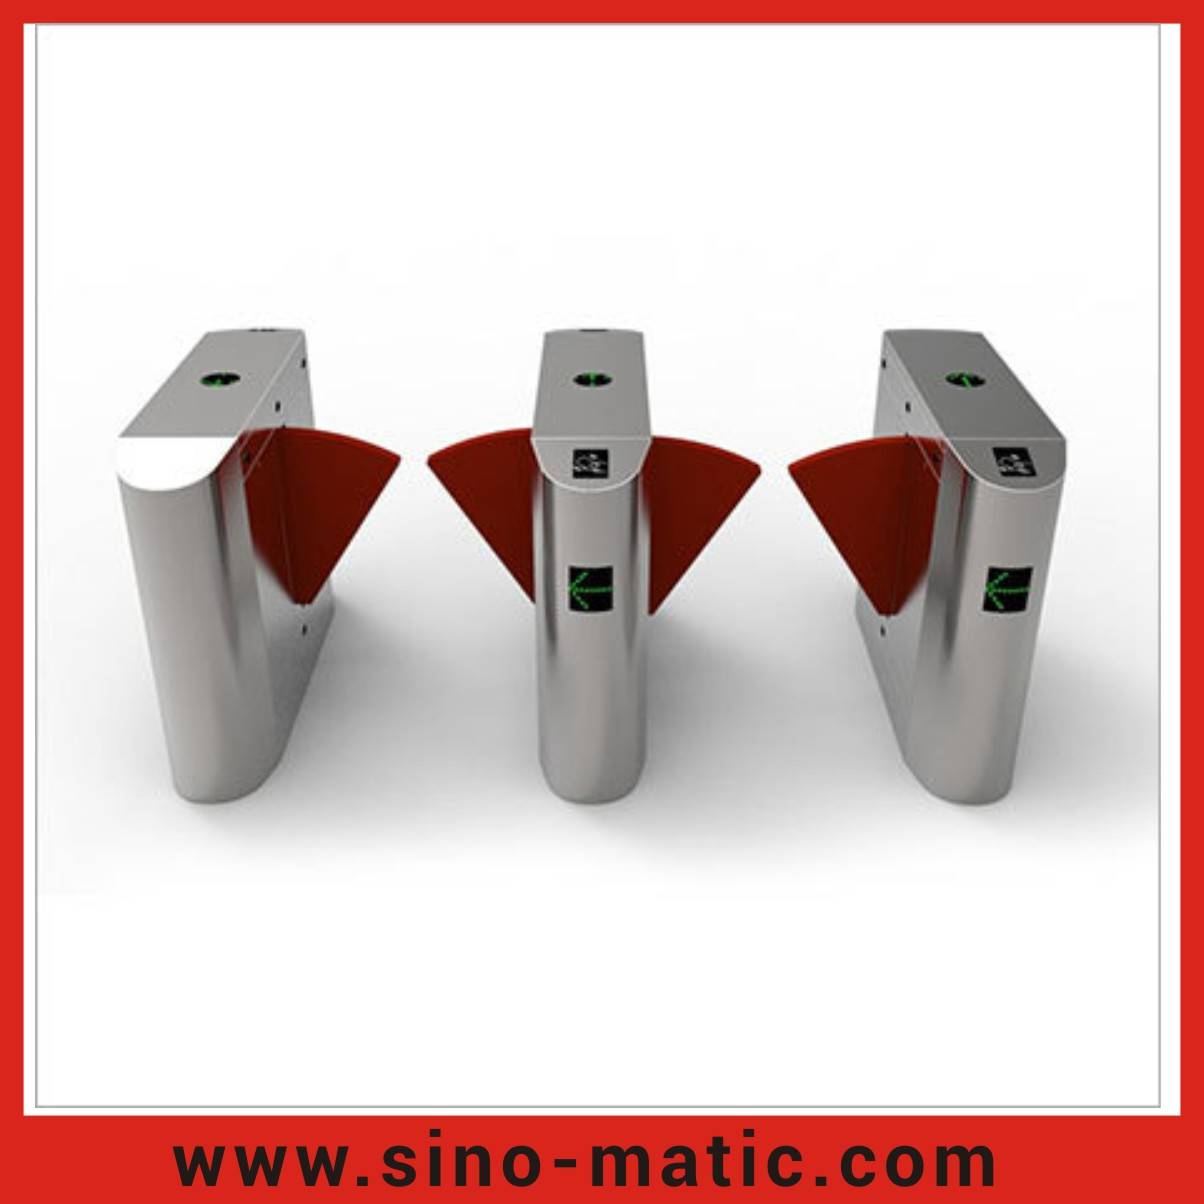 Access Control Flap barrier gate with LED light indicator